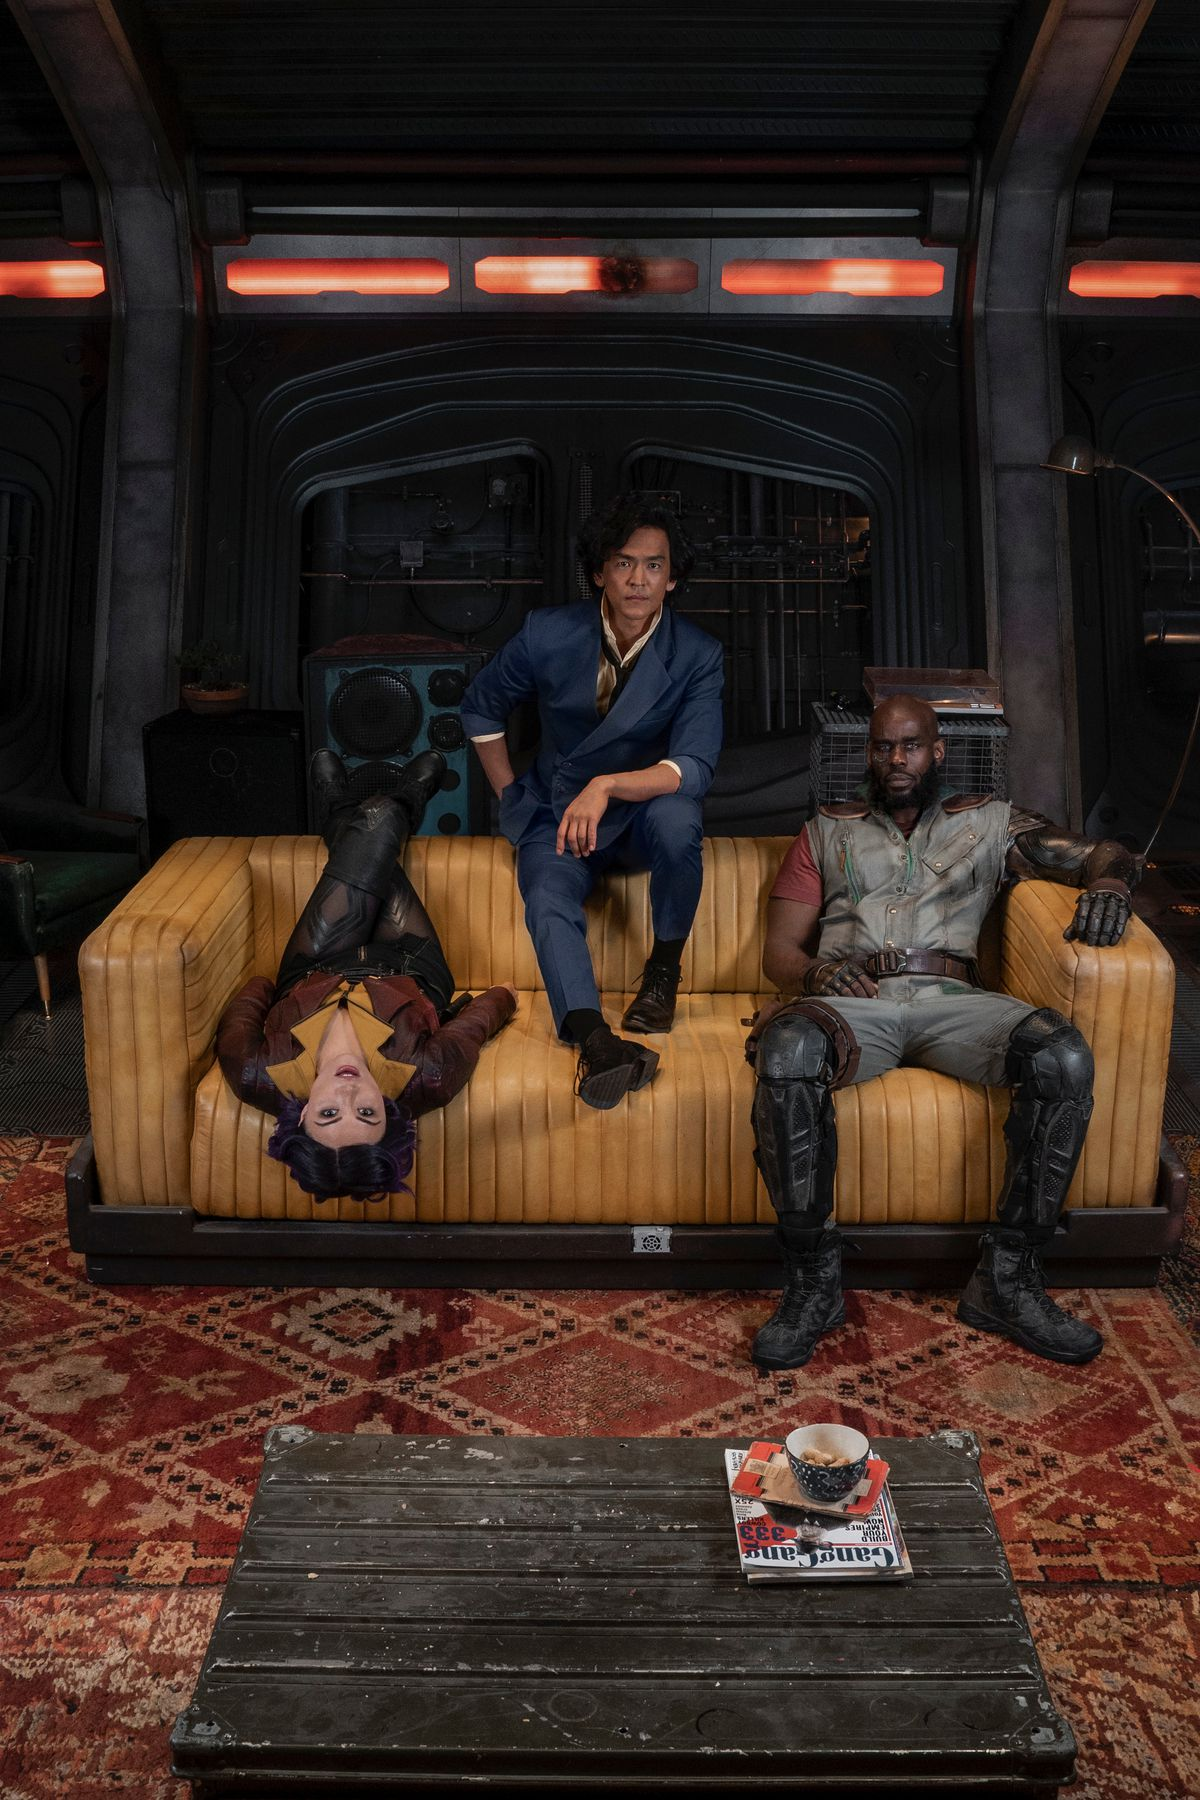 The cast of Netflix's Cowboy Bebop sitting on a couch